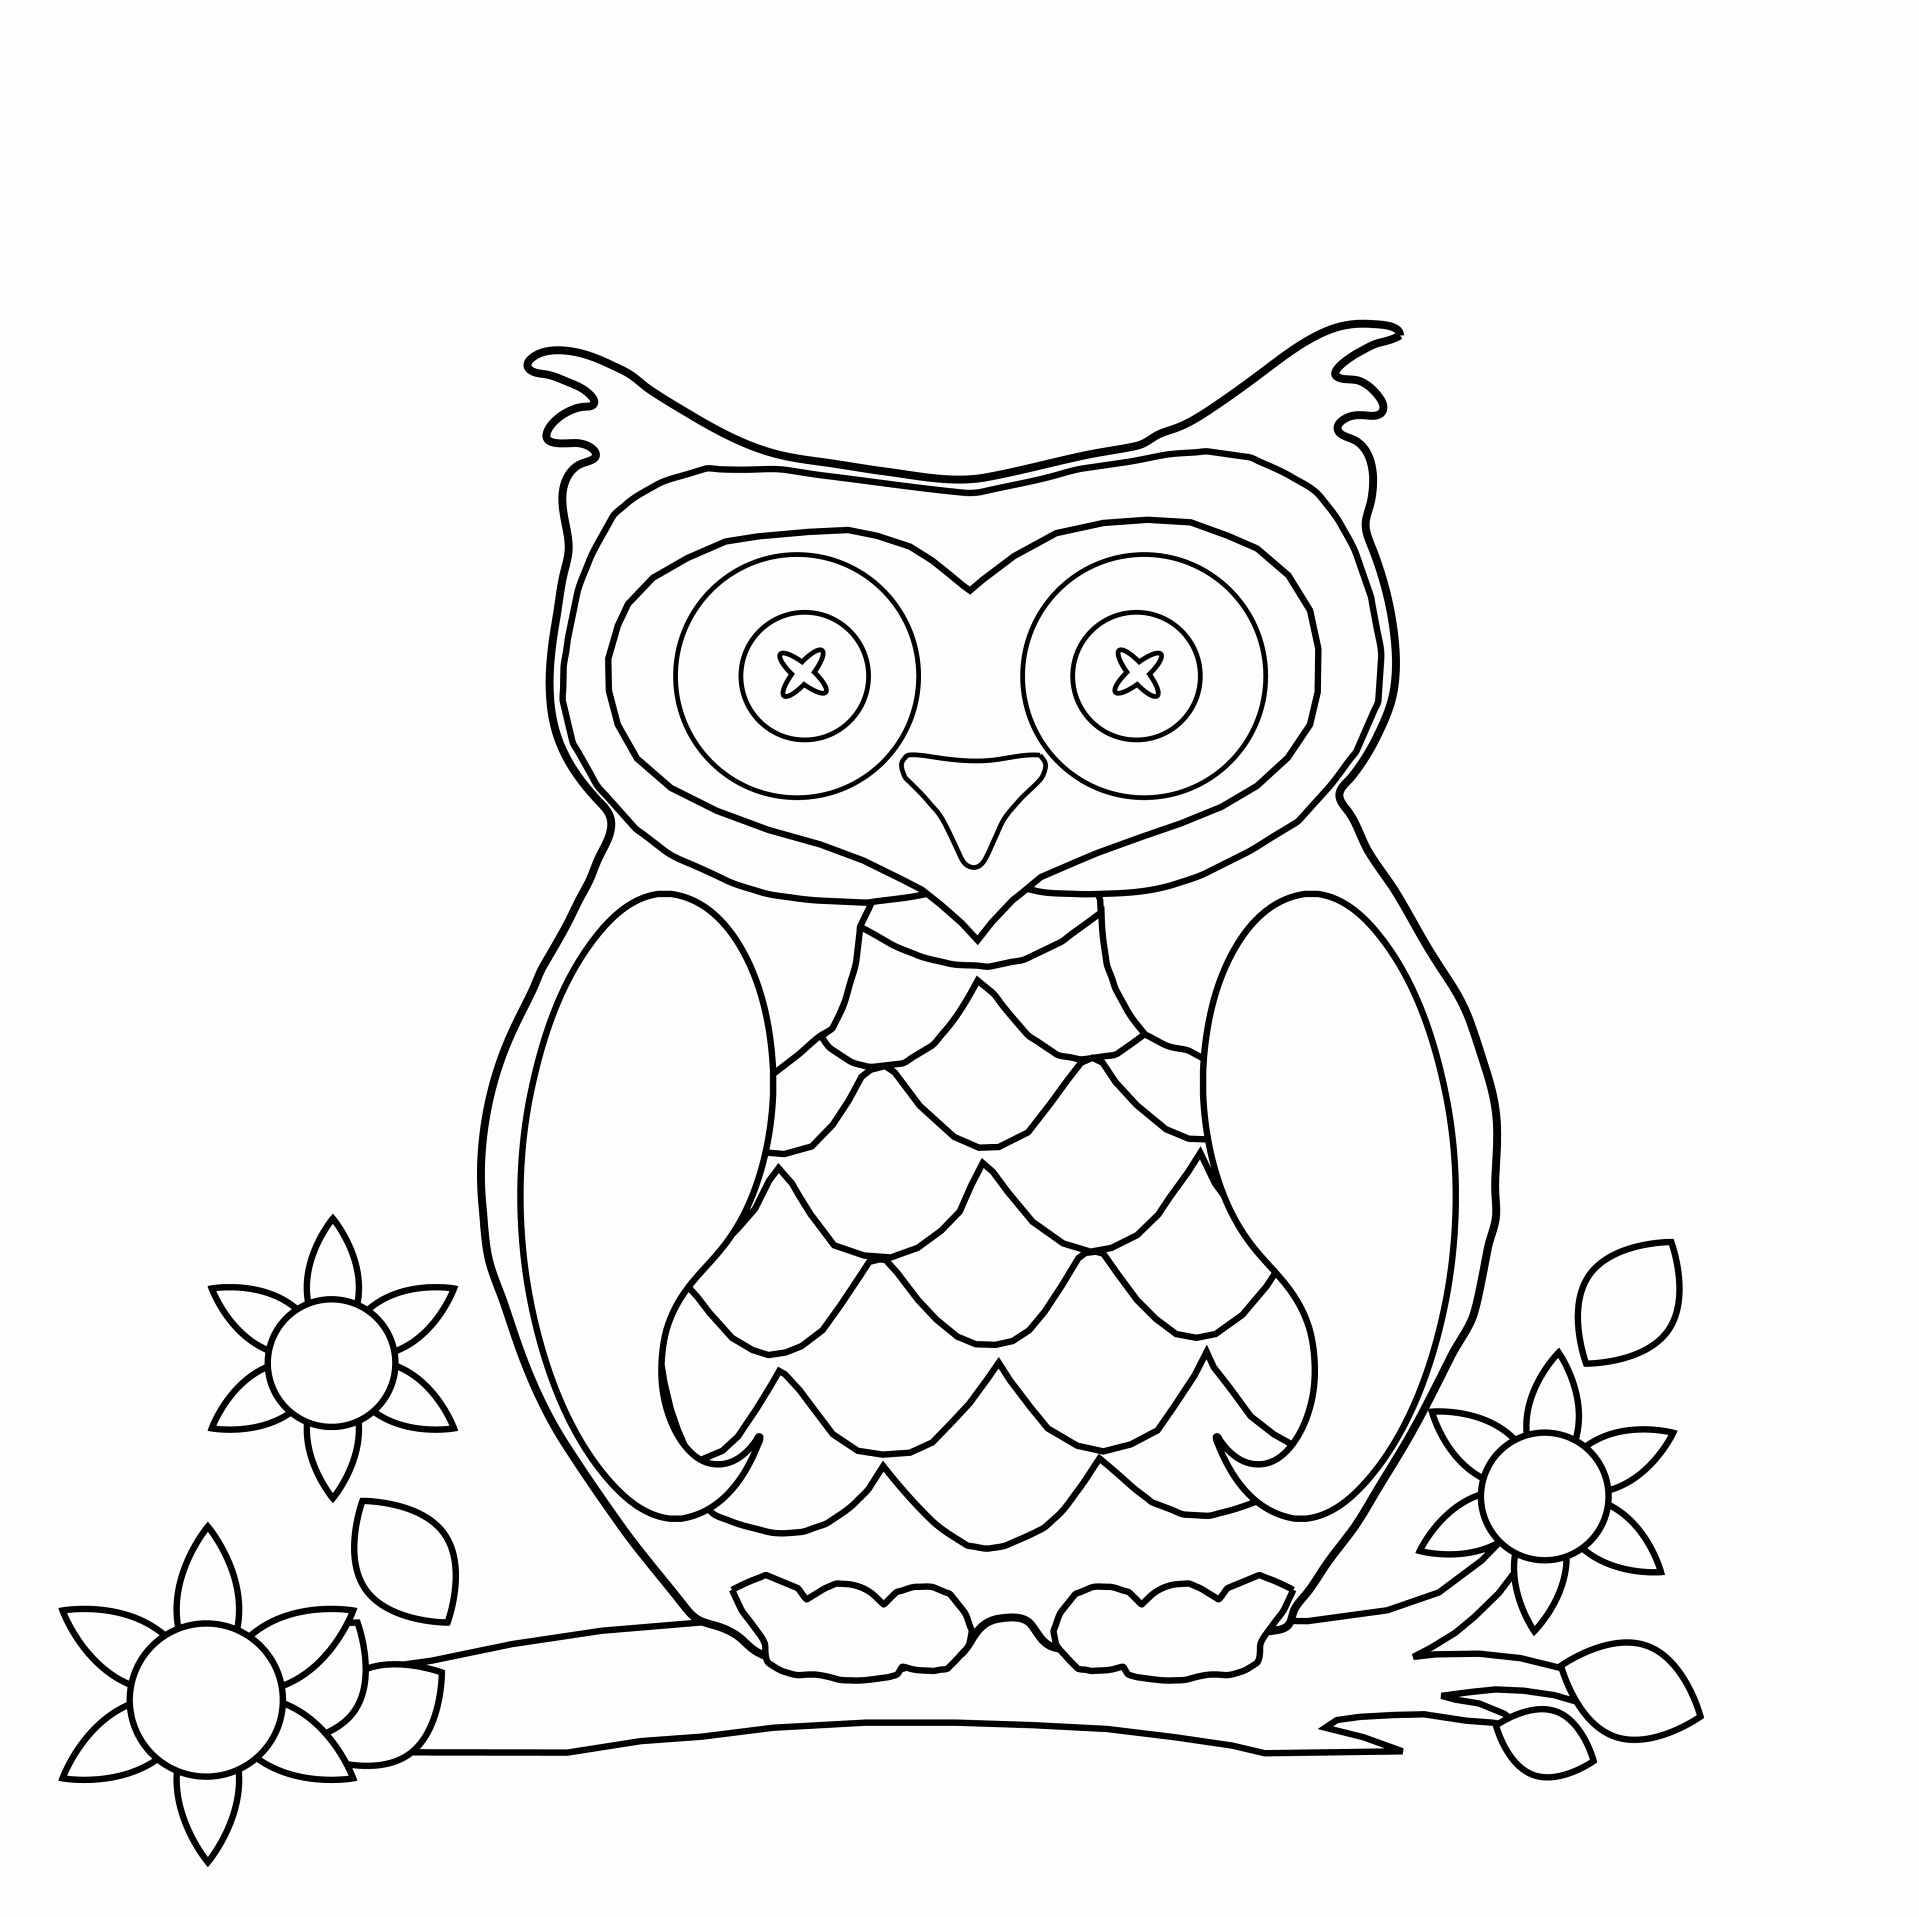 1919x1917 Cute Owl Sketches Luxury Cartoon Owl Coloring Pages Free Download